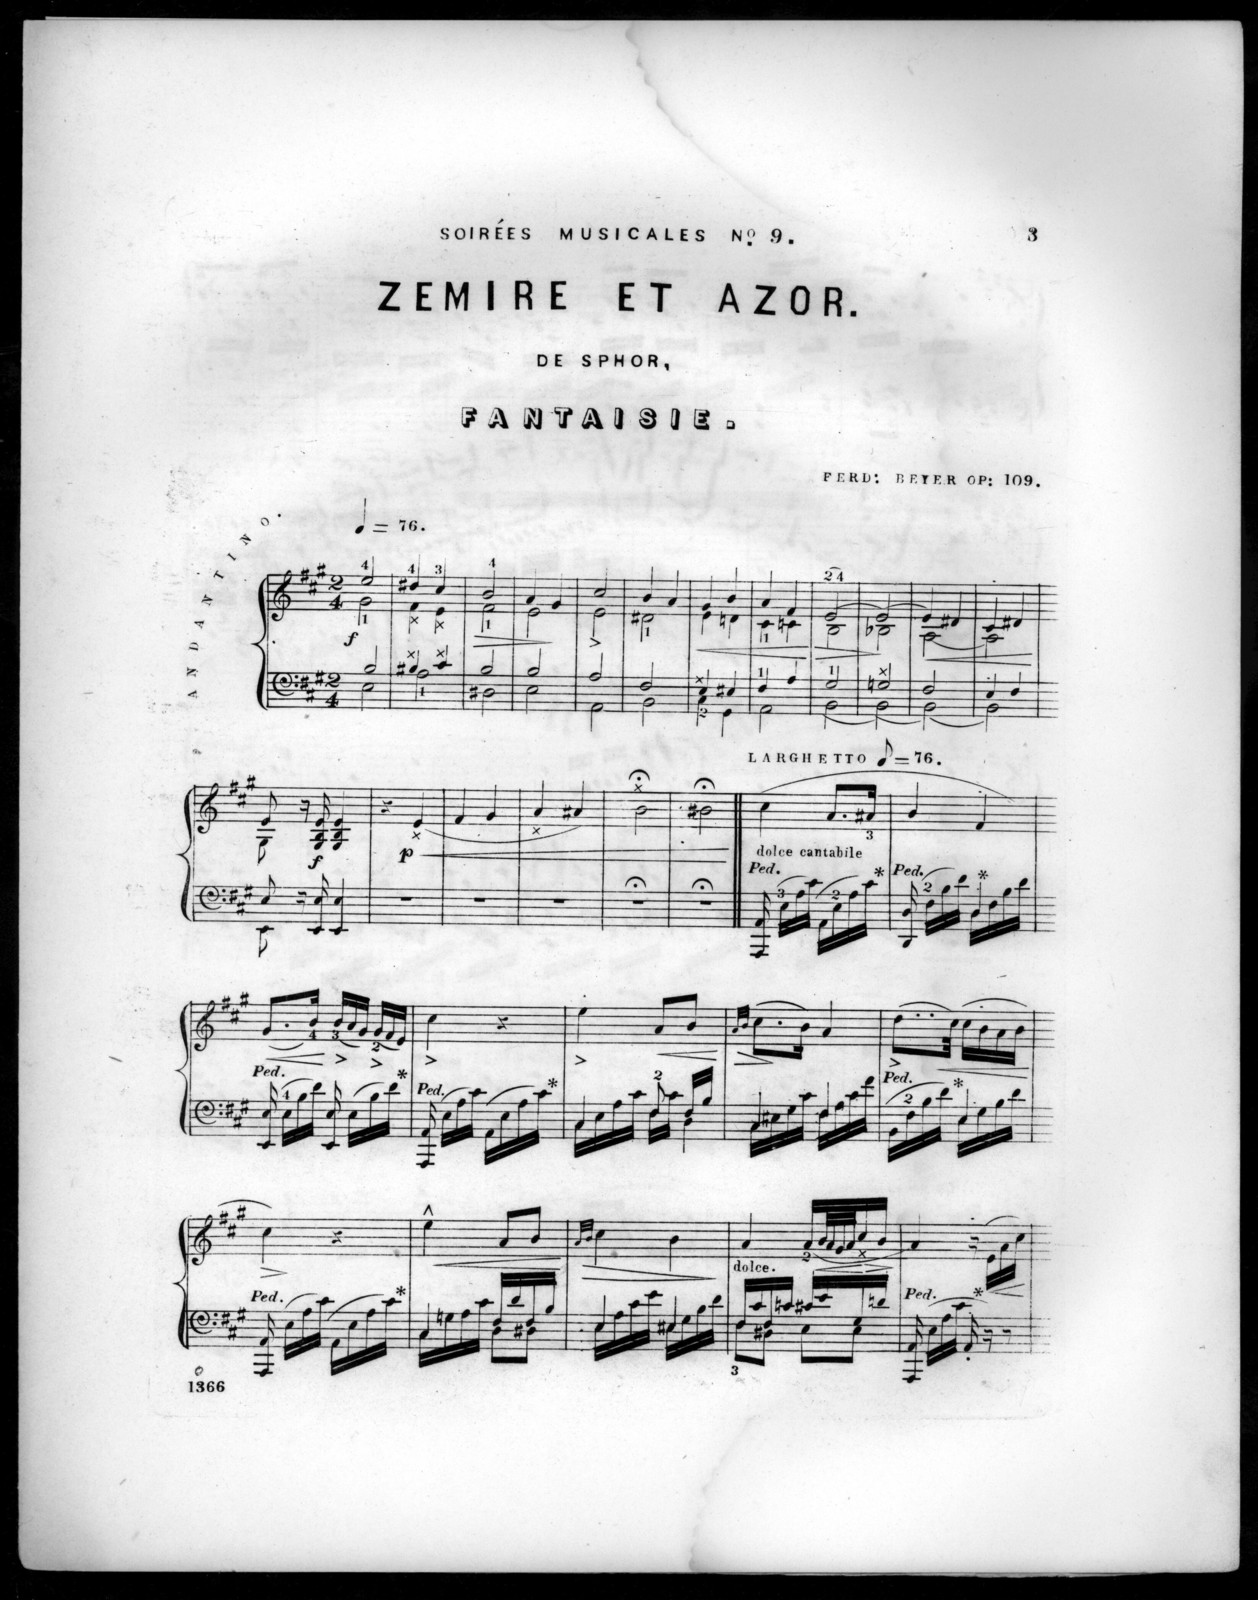 Zemire at Azor de Sphor, fantaisie, op. 109